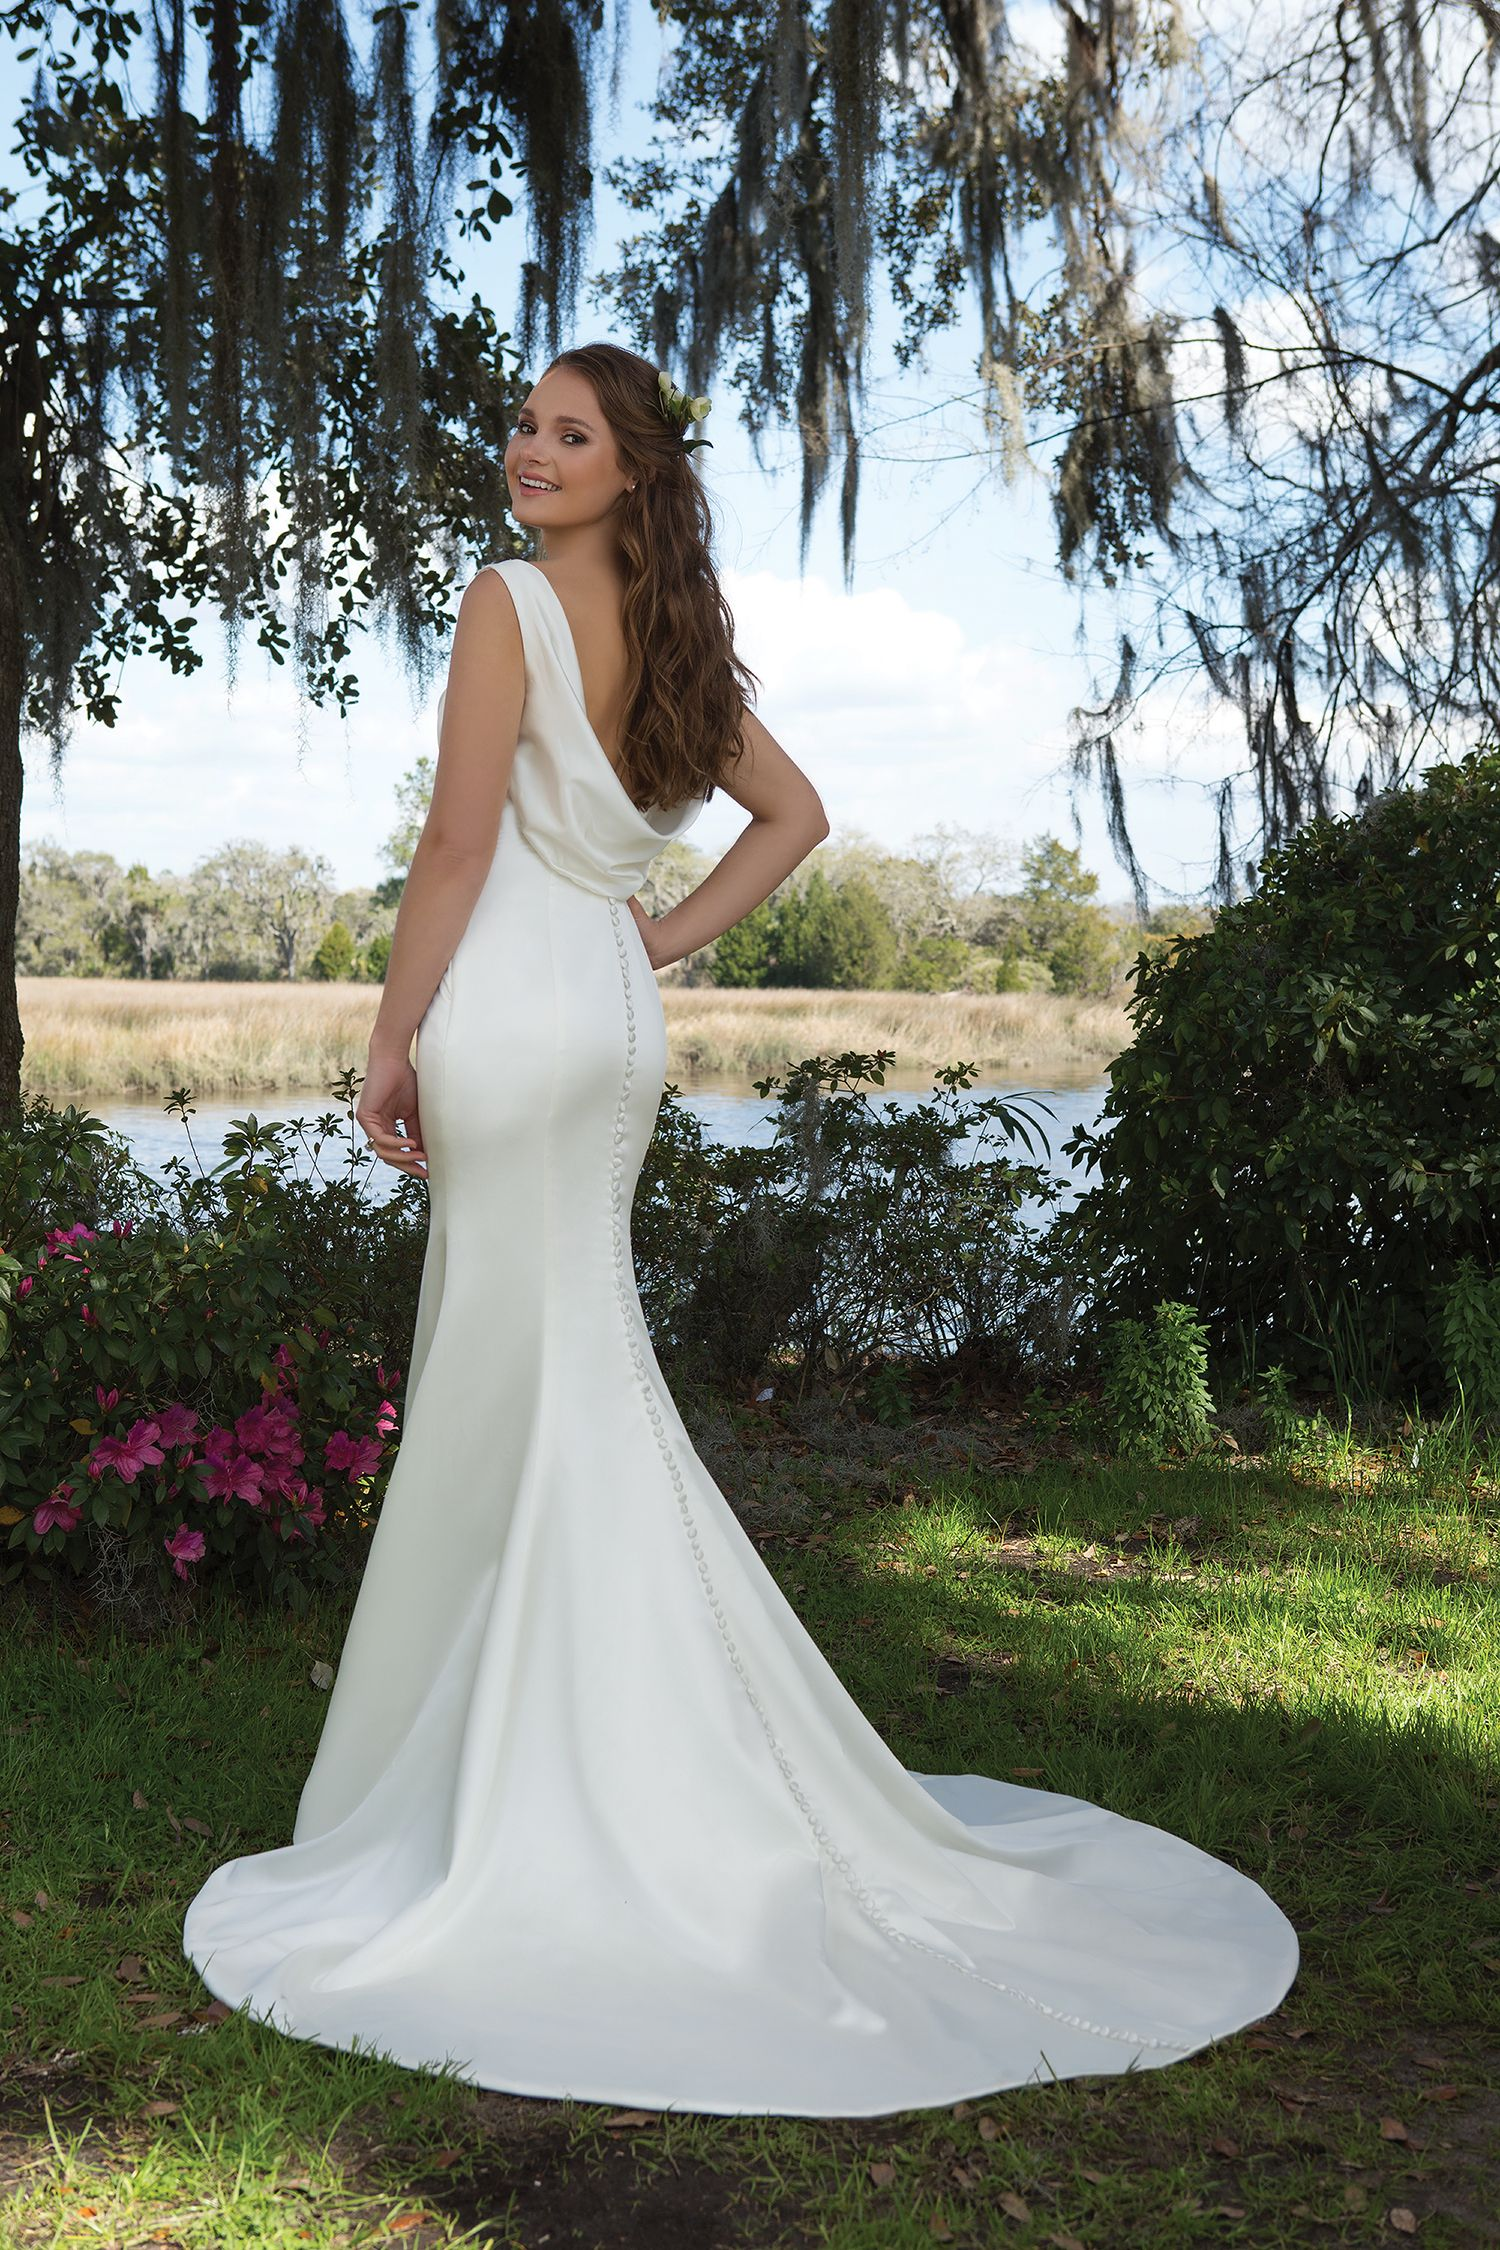 Stunning Stretch satin wedding dress with cowl back and fitted shape Fit and flare wedding gown